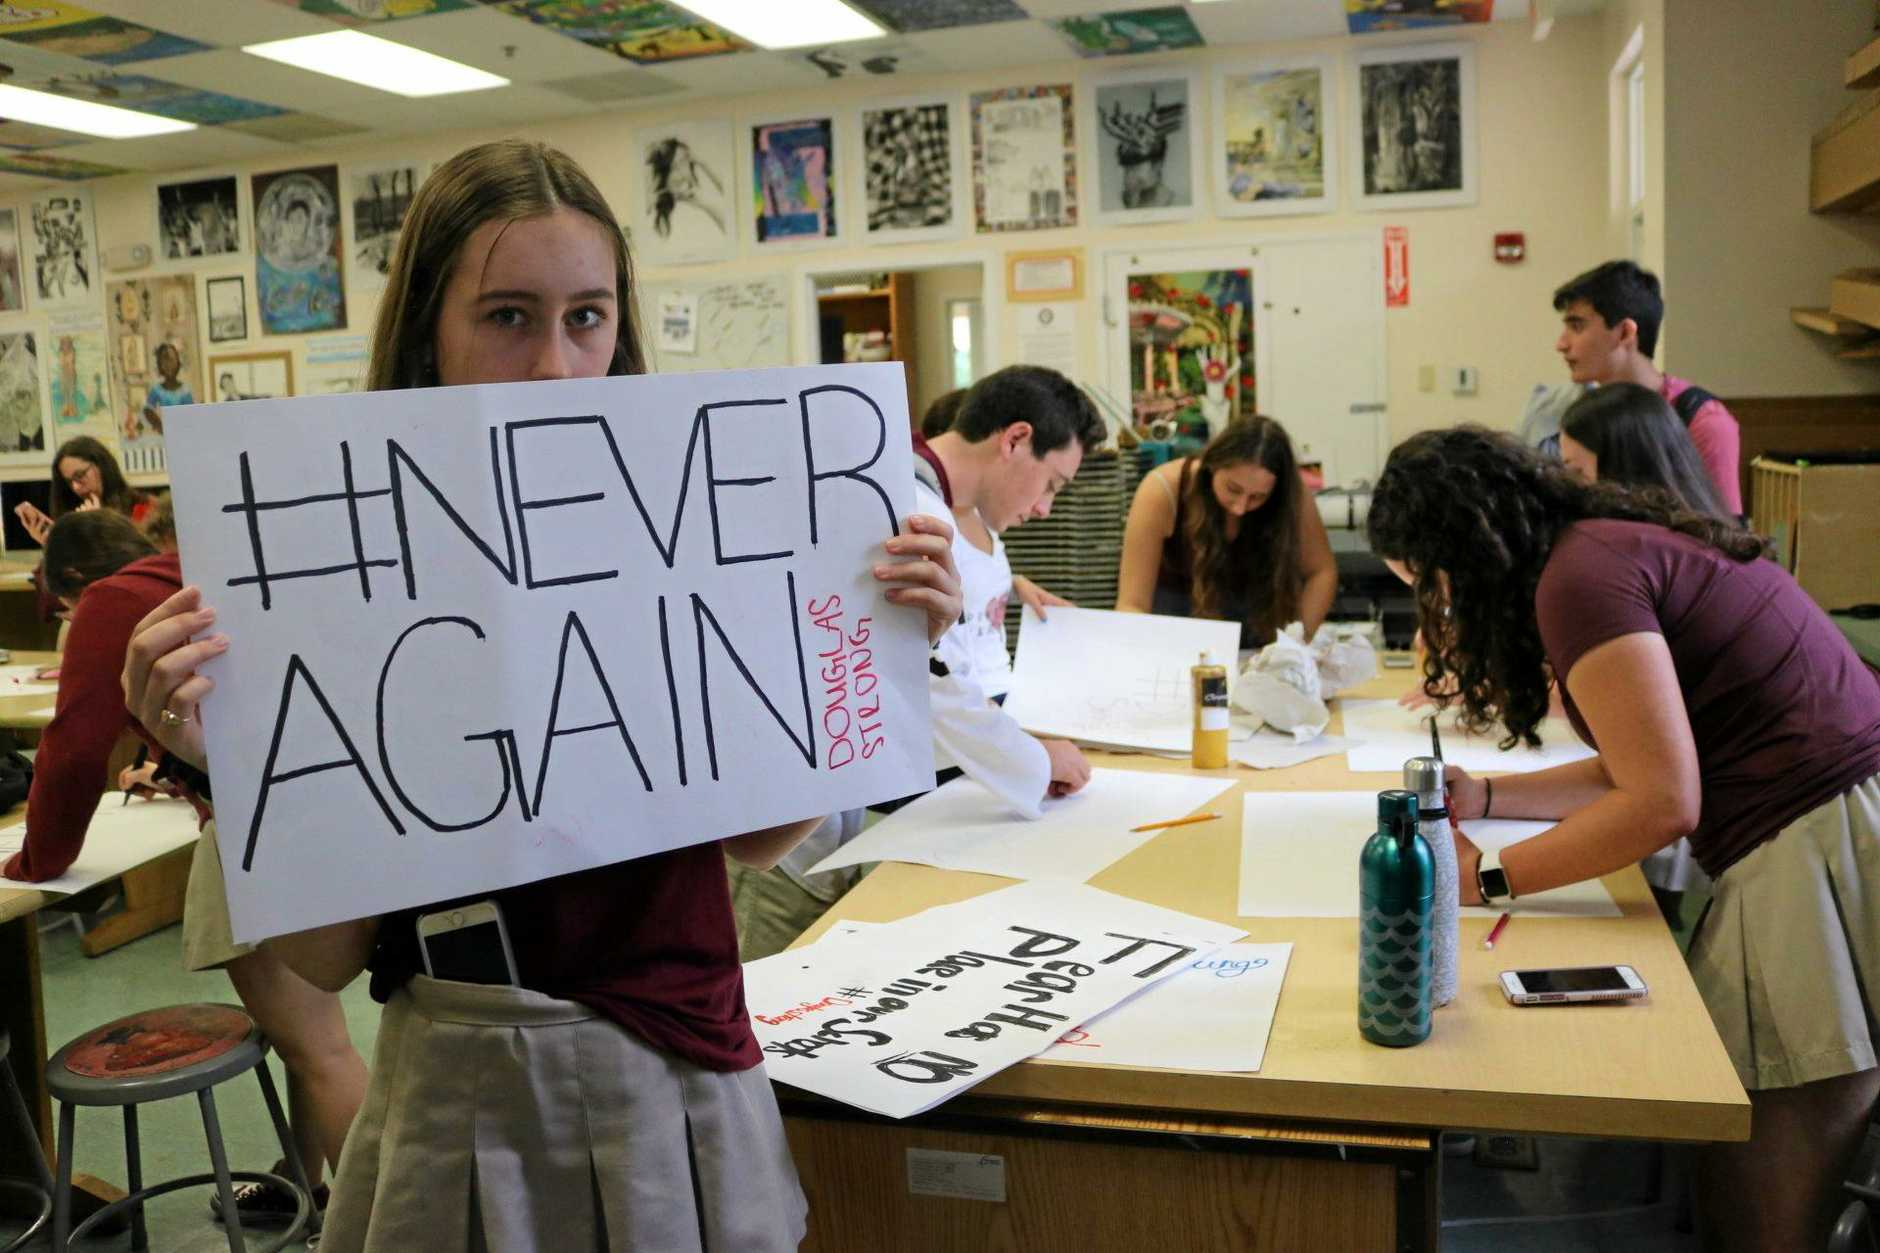 A student holds a sign reading